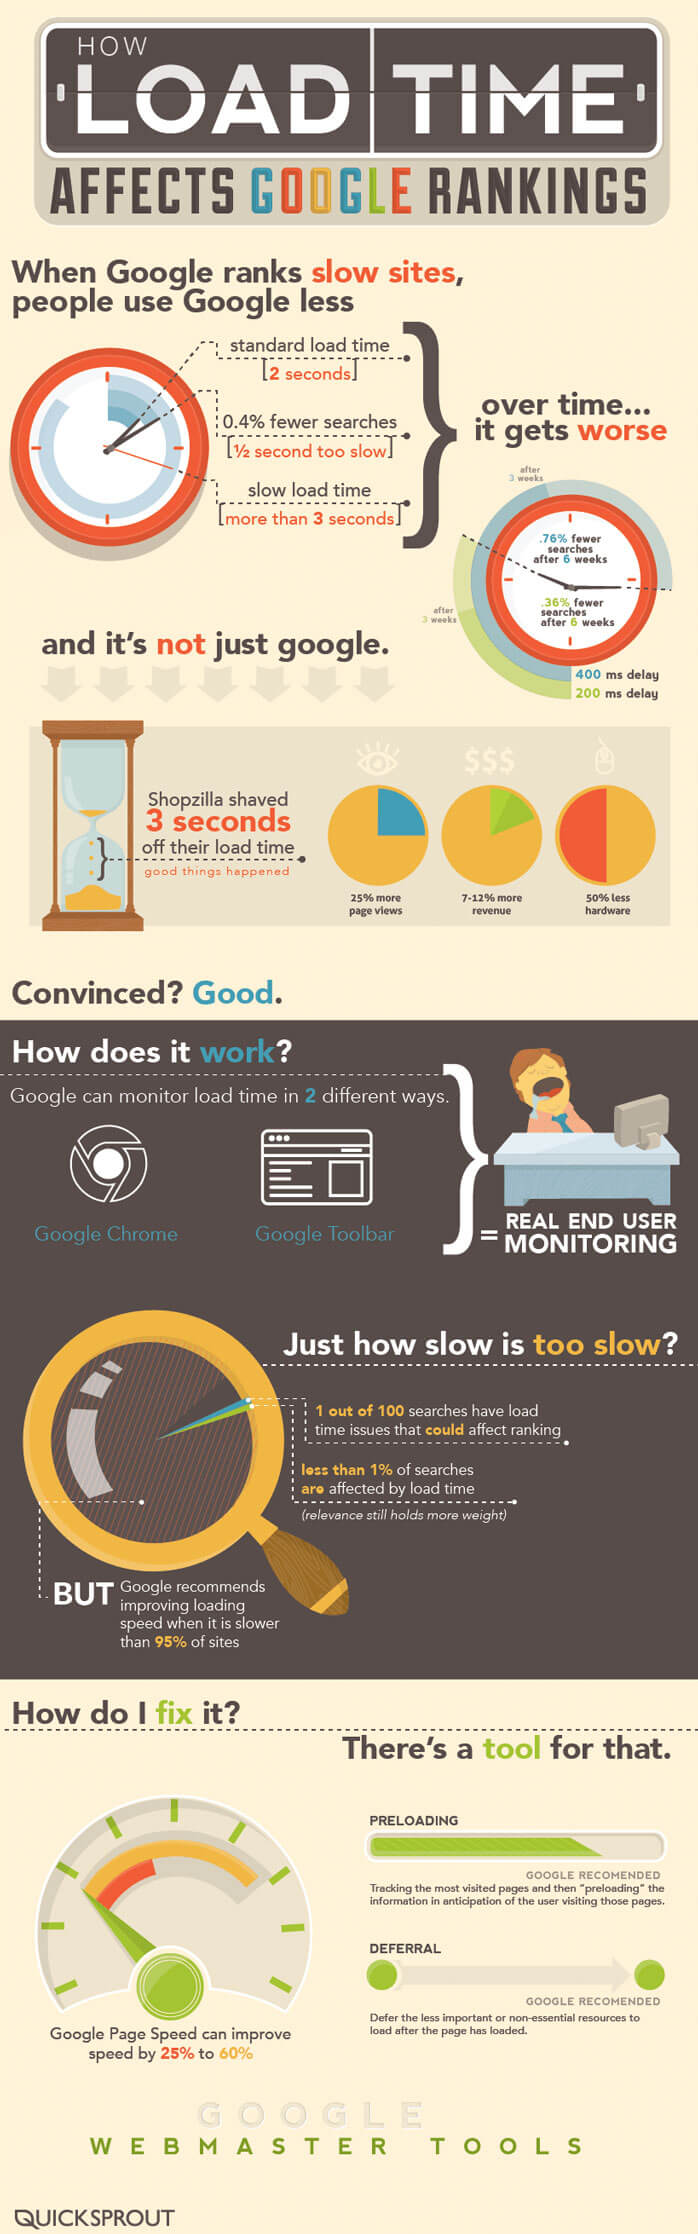 slow-website-speed-affects-google-rankings